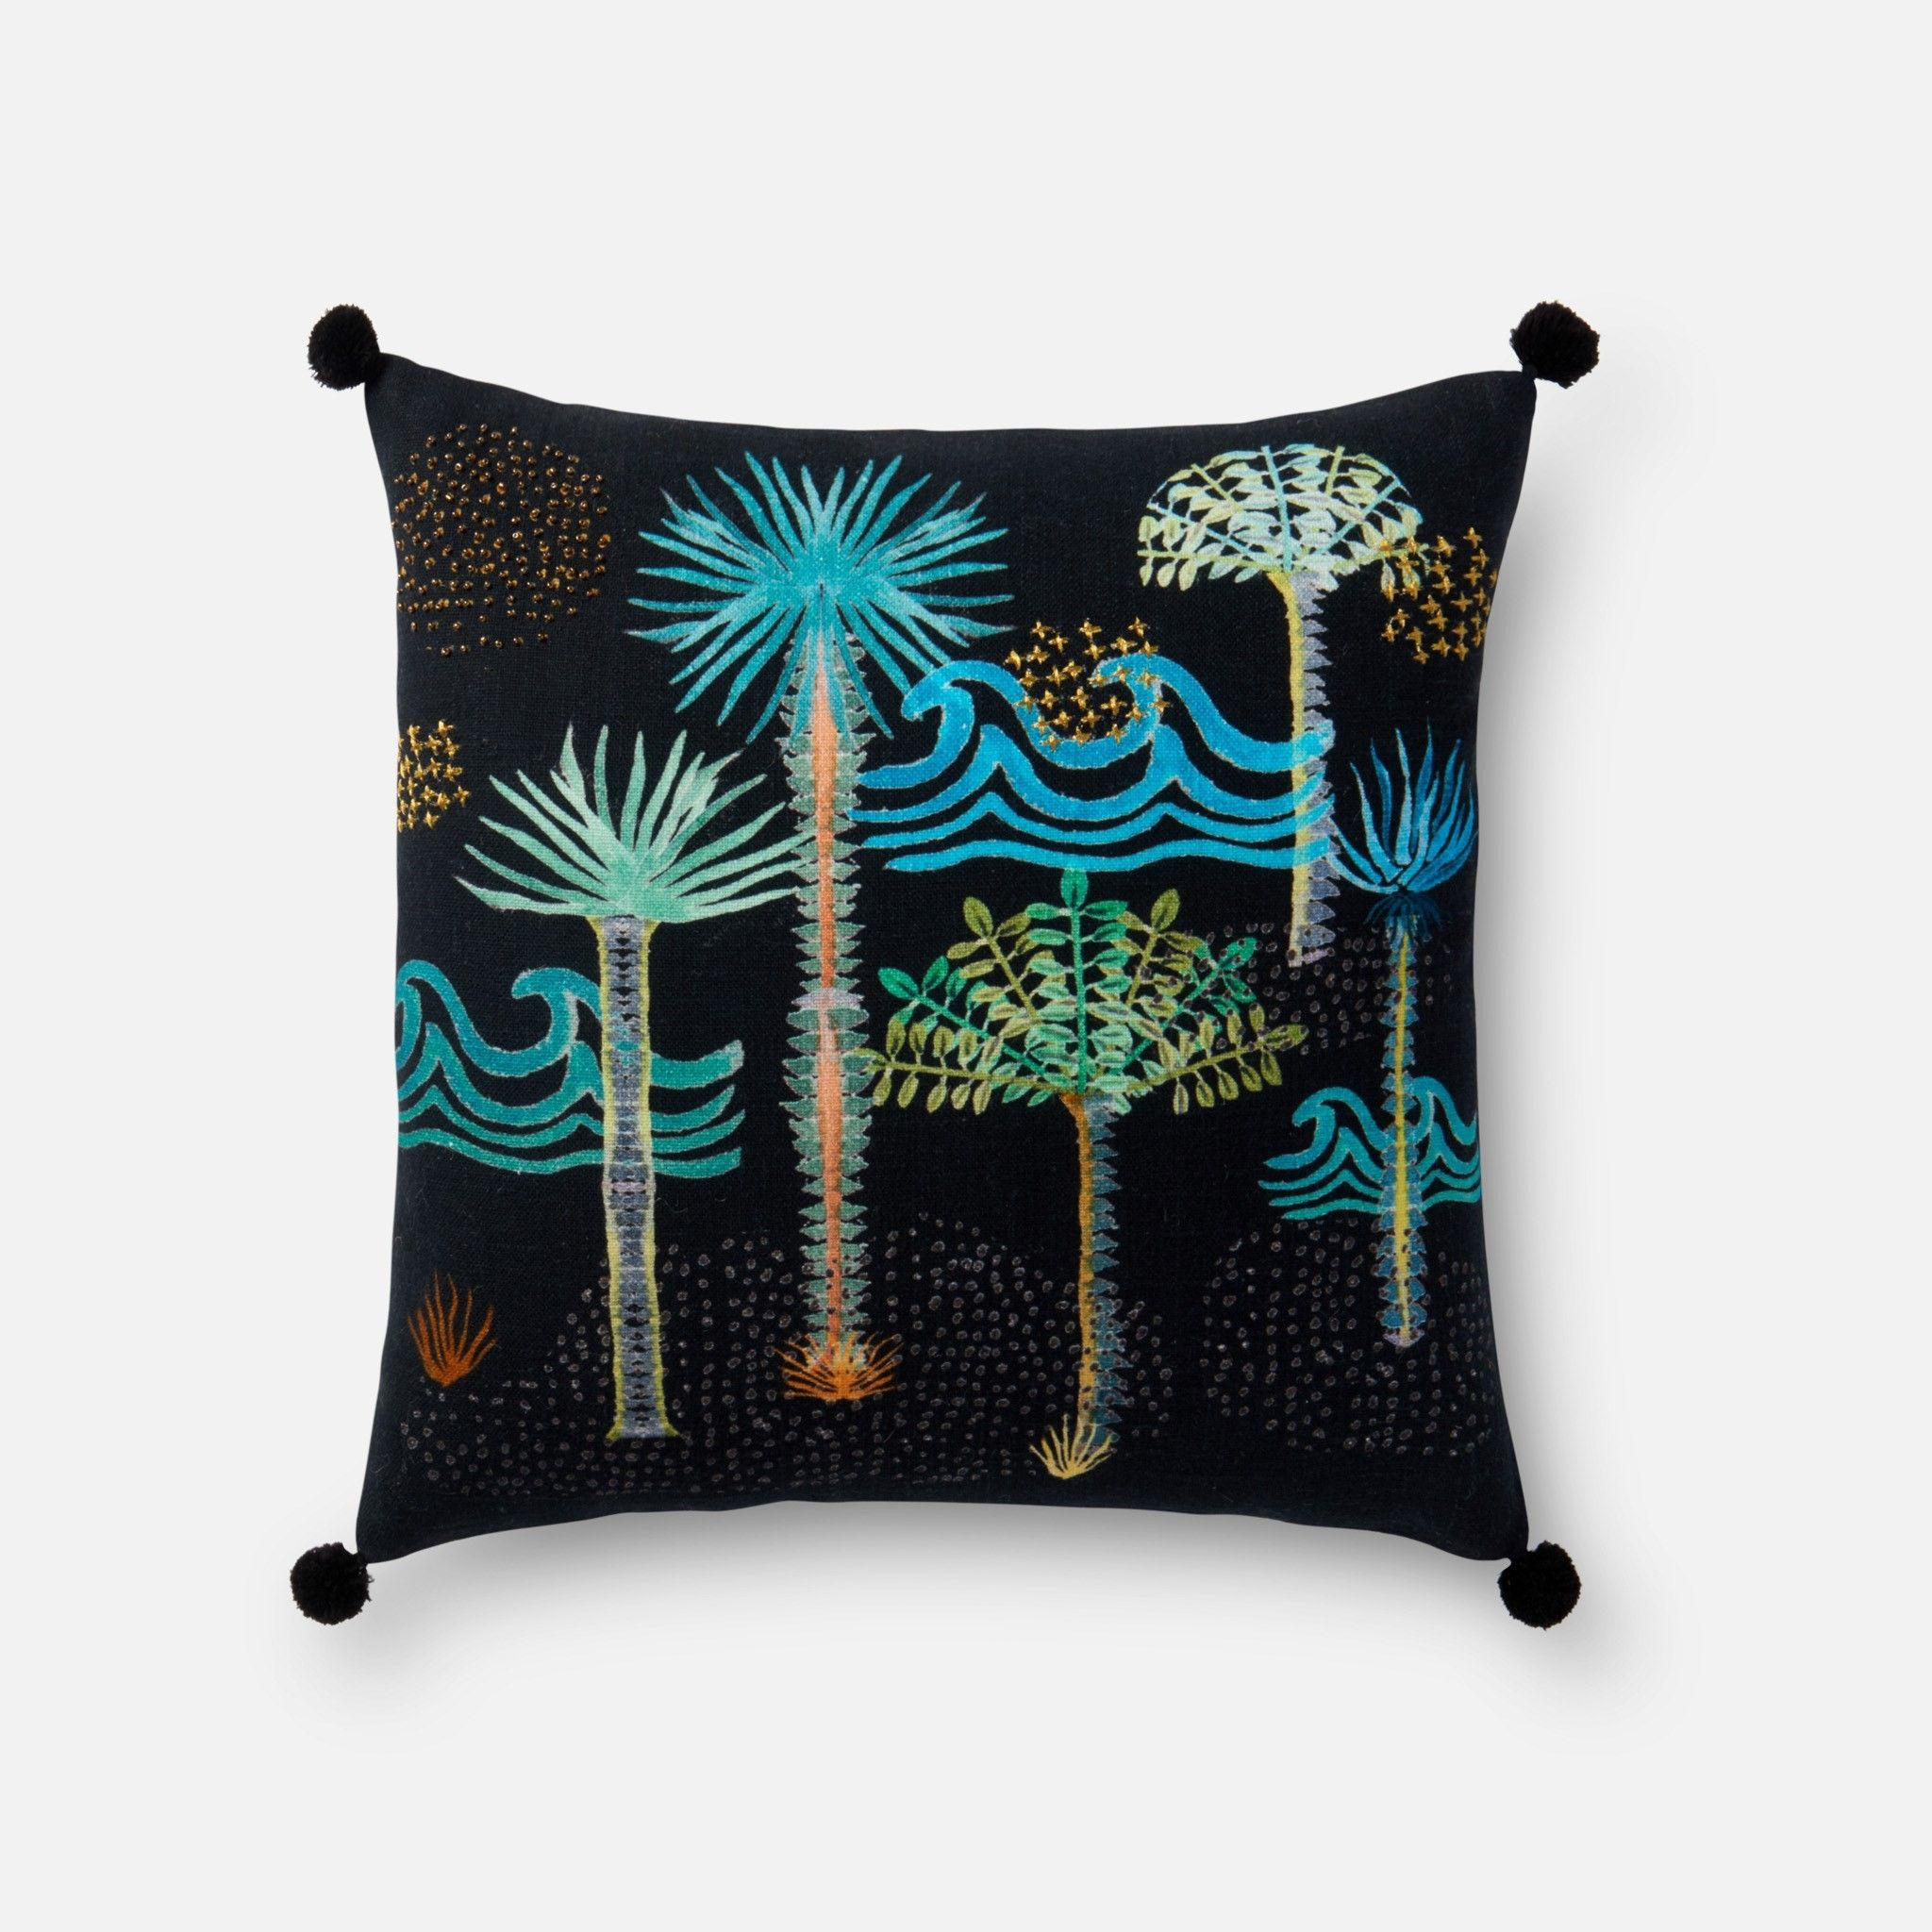 Justina Blakeney Palms Pillow, Black